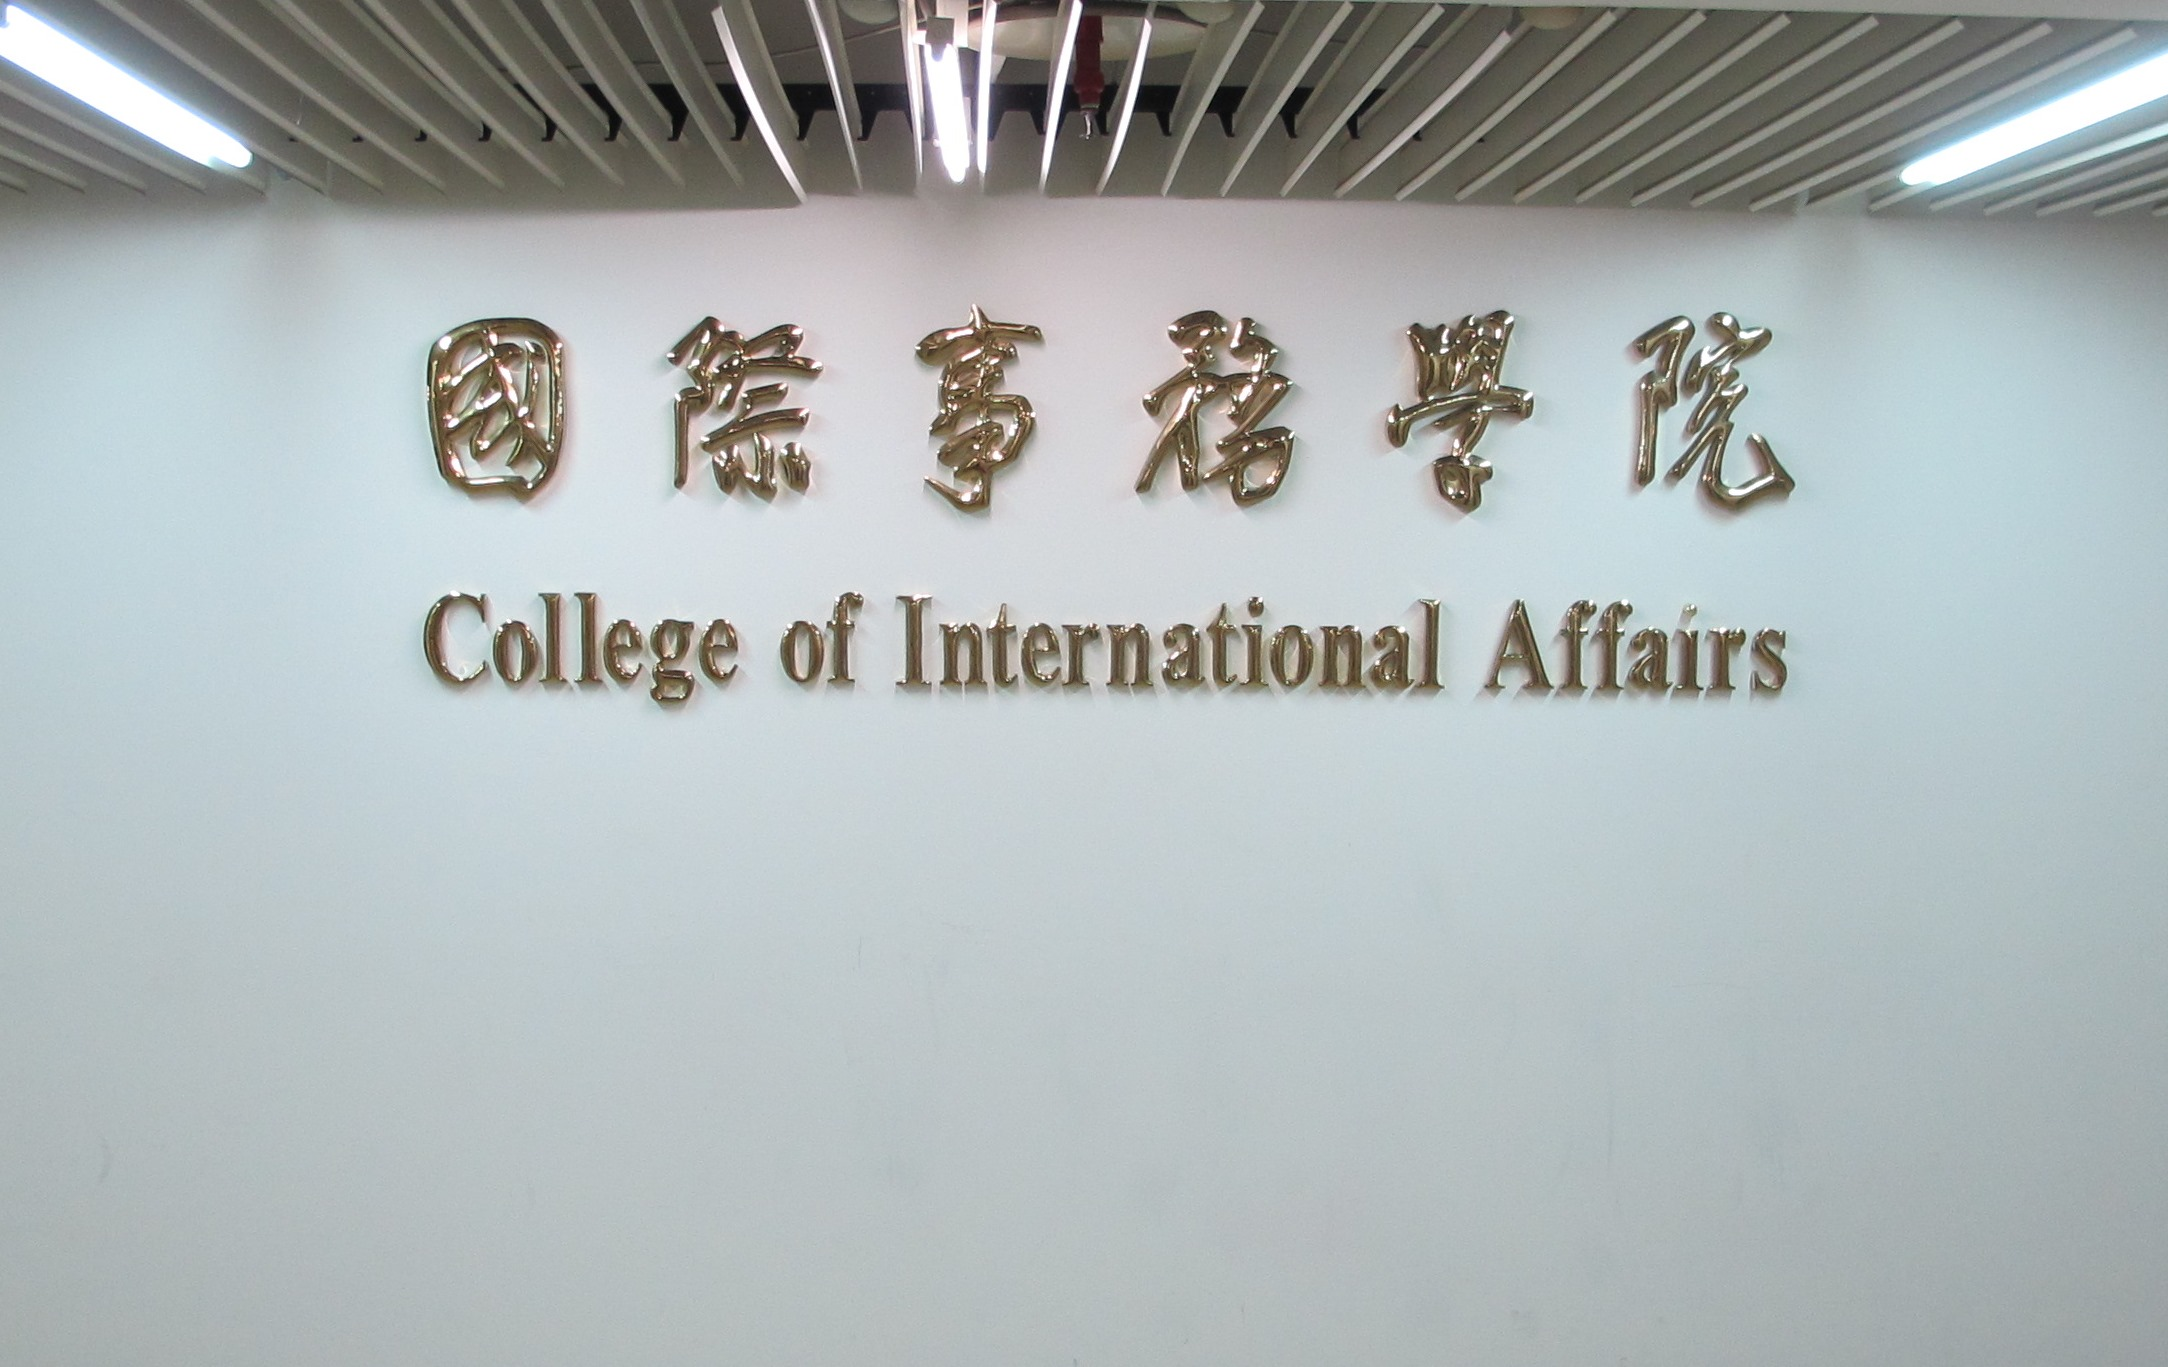 College of International Affairs